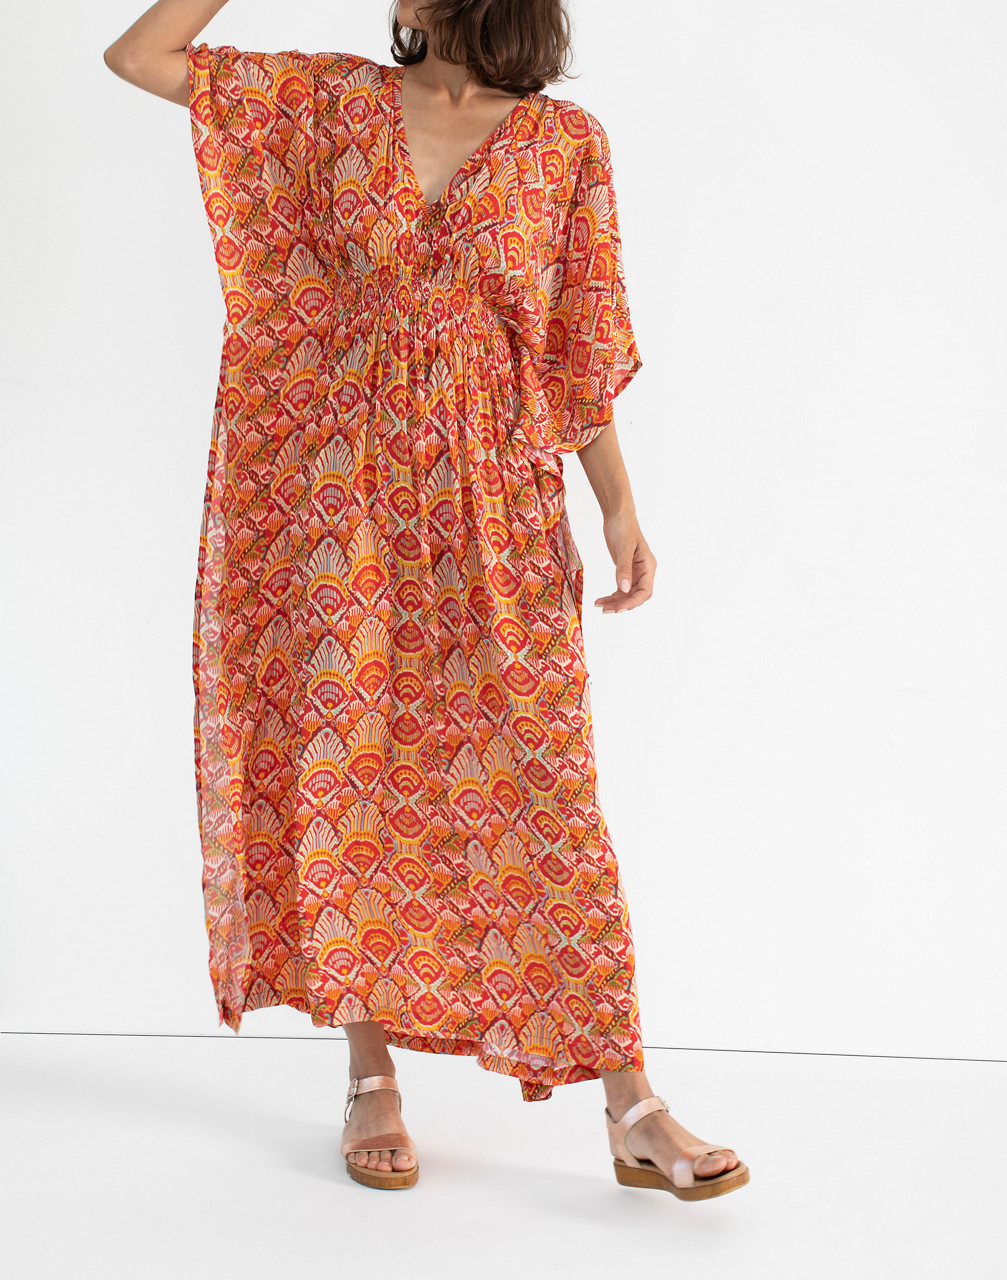 60s Mod Clothing Outfit Ideas rujuta sheth Marie Cinch Kaftan Dress $119.97 AT vintagedancer.com